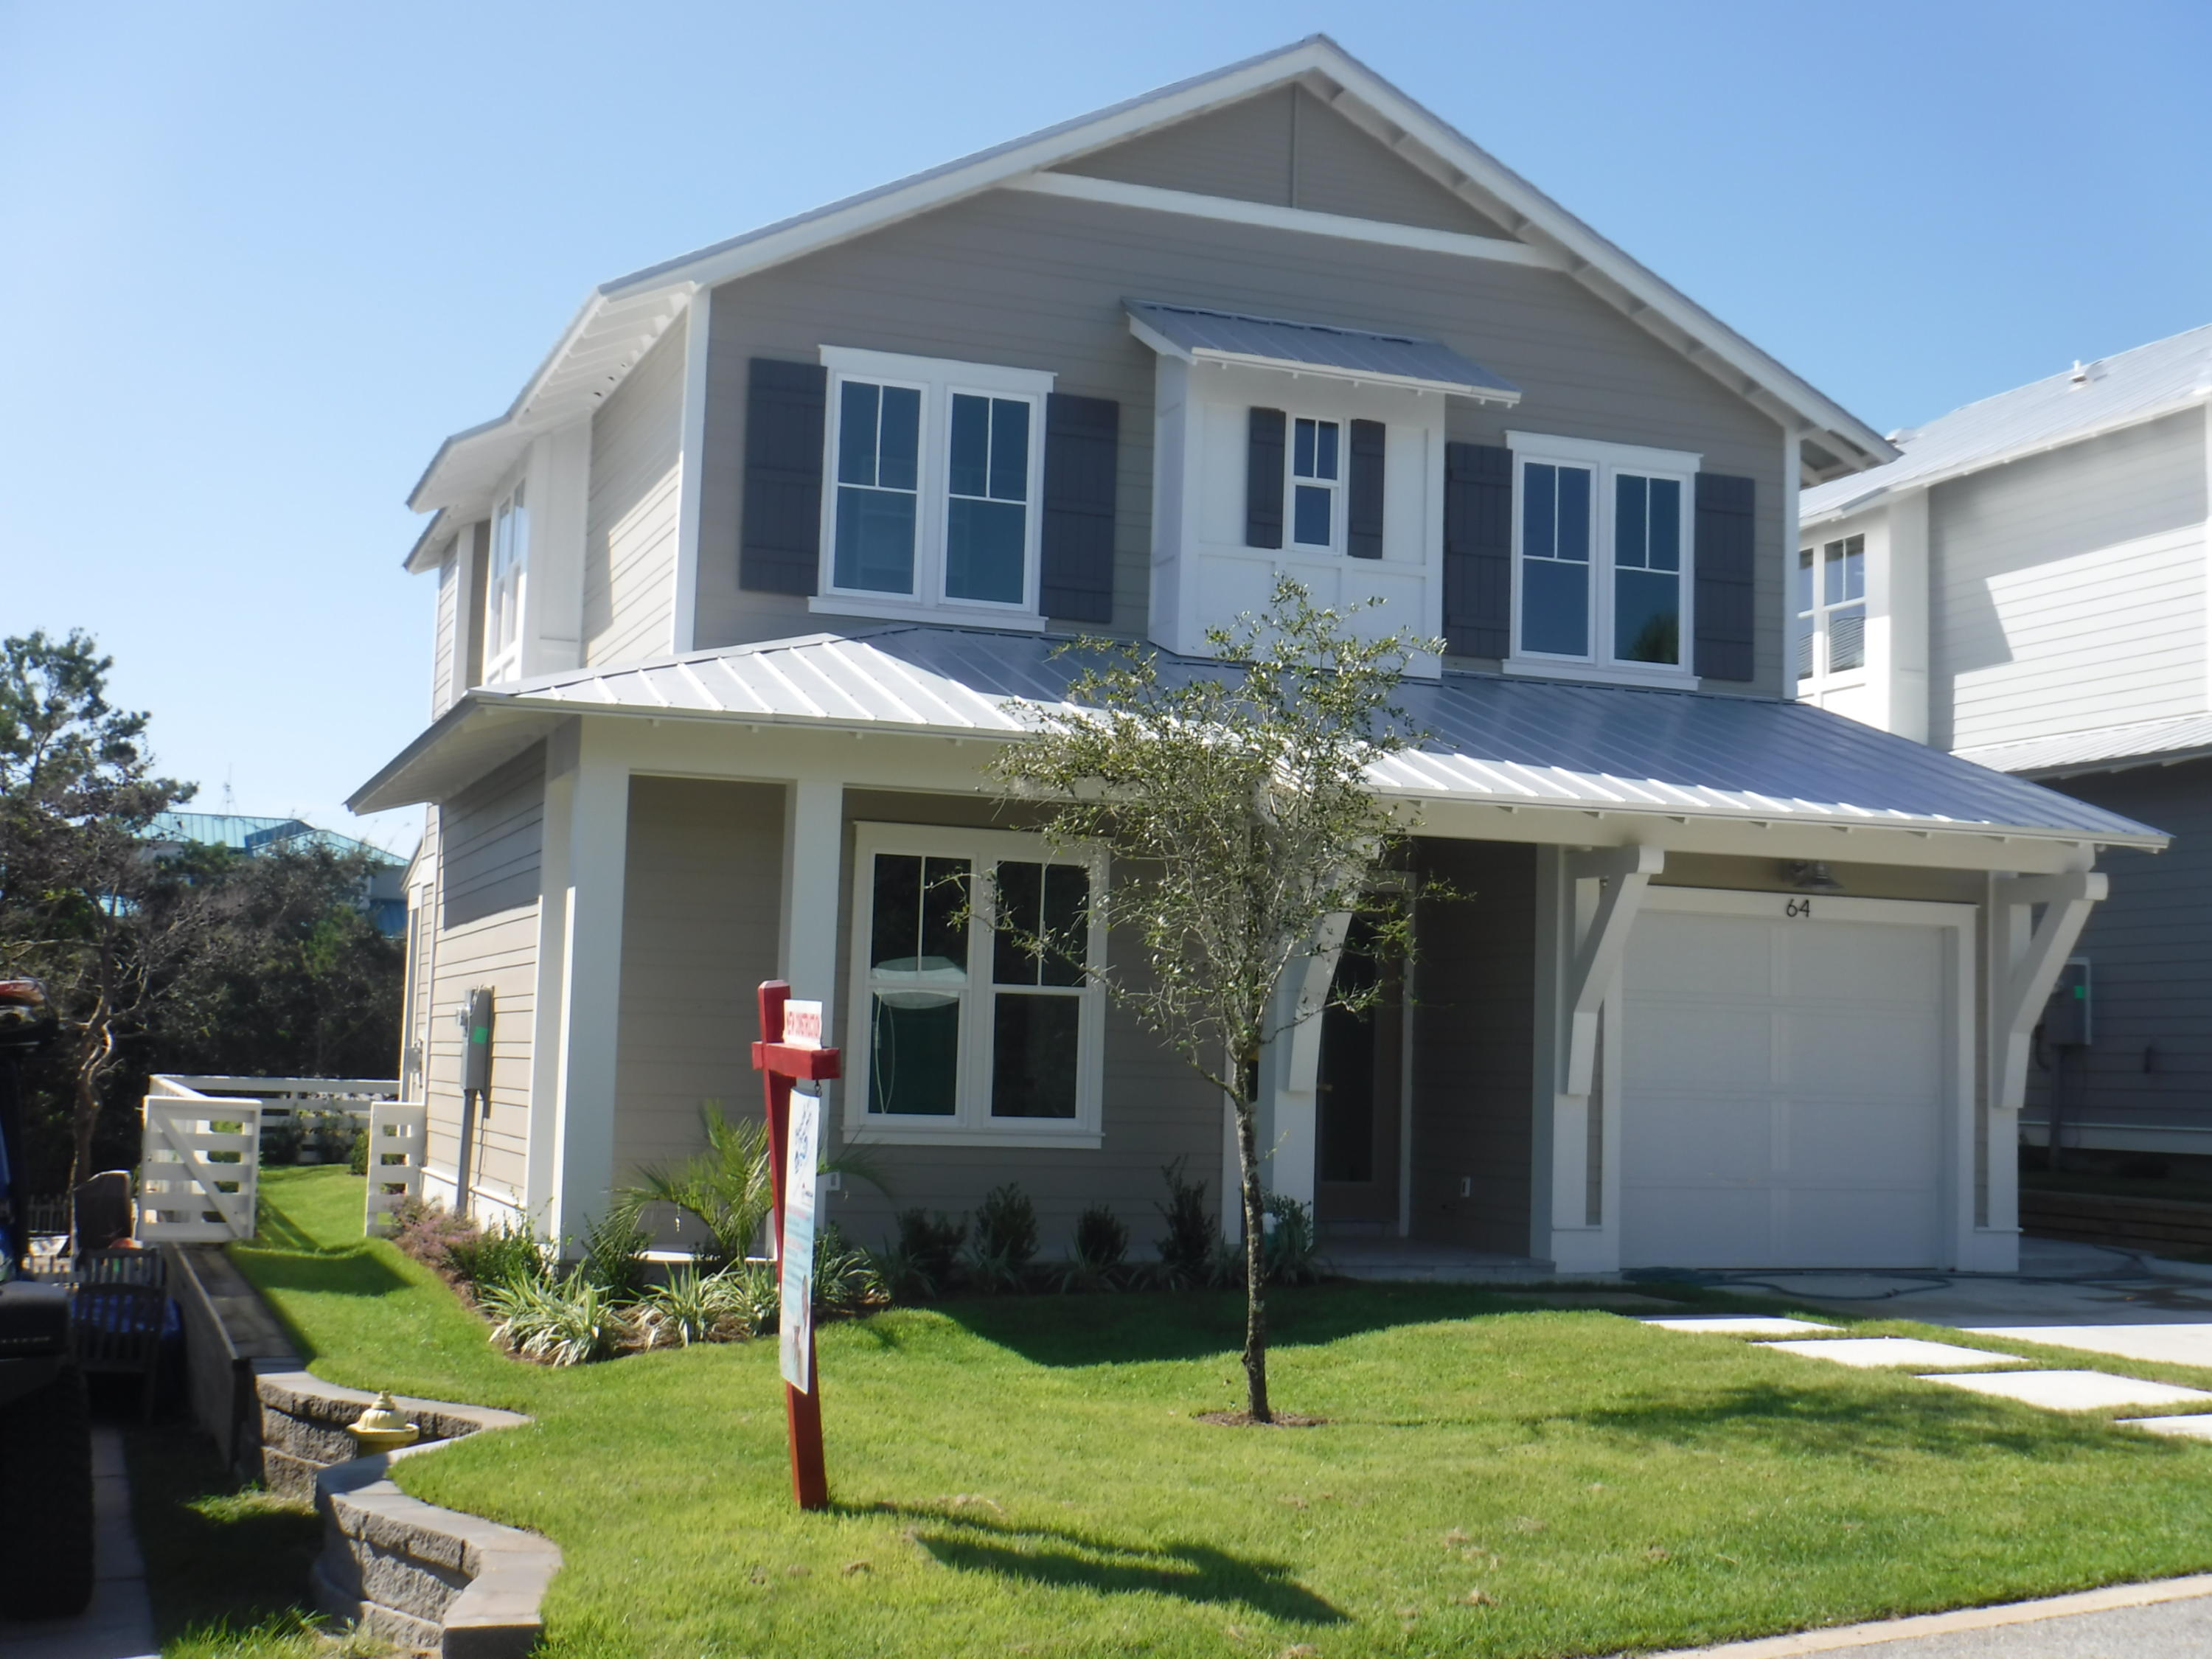 Photo of home for sale at 64 Ventana, Santa Rosa Beach FL